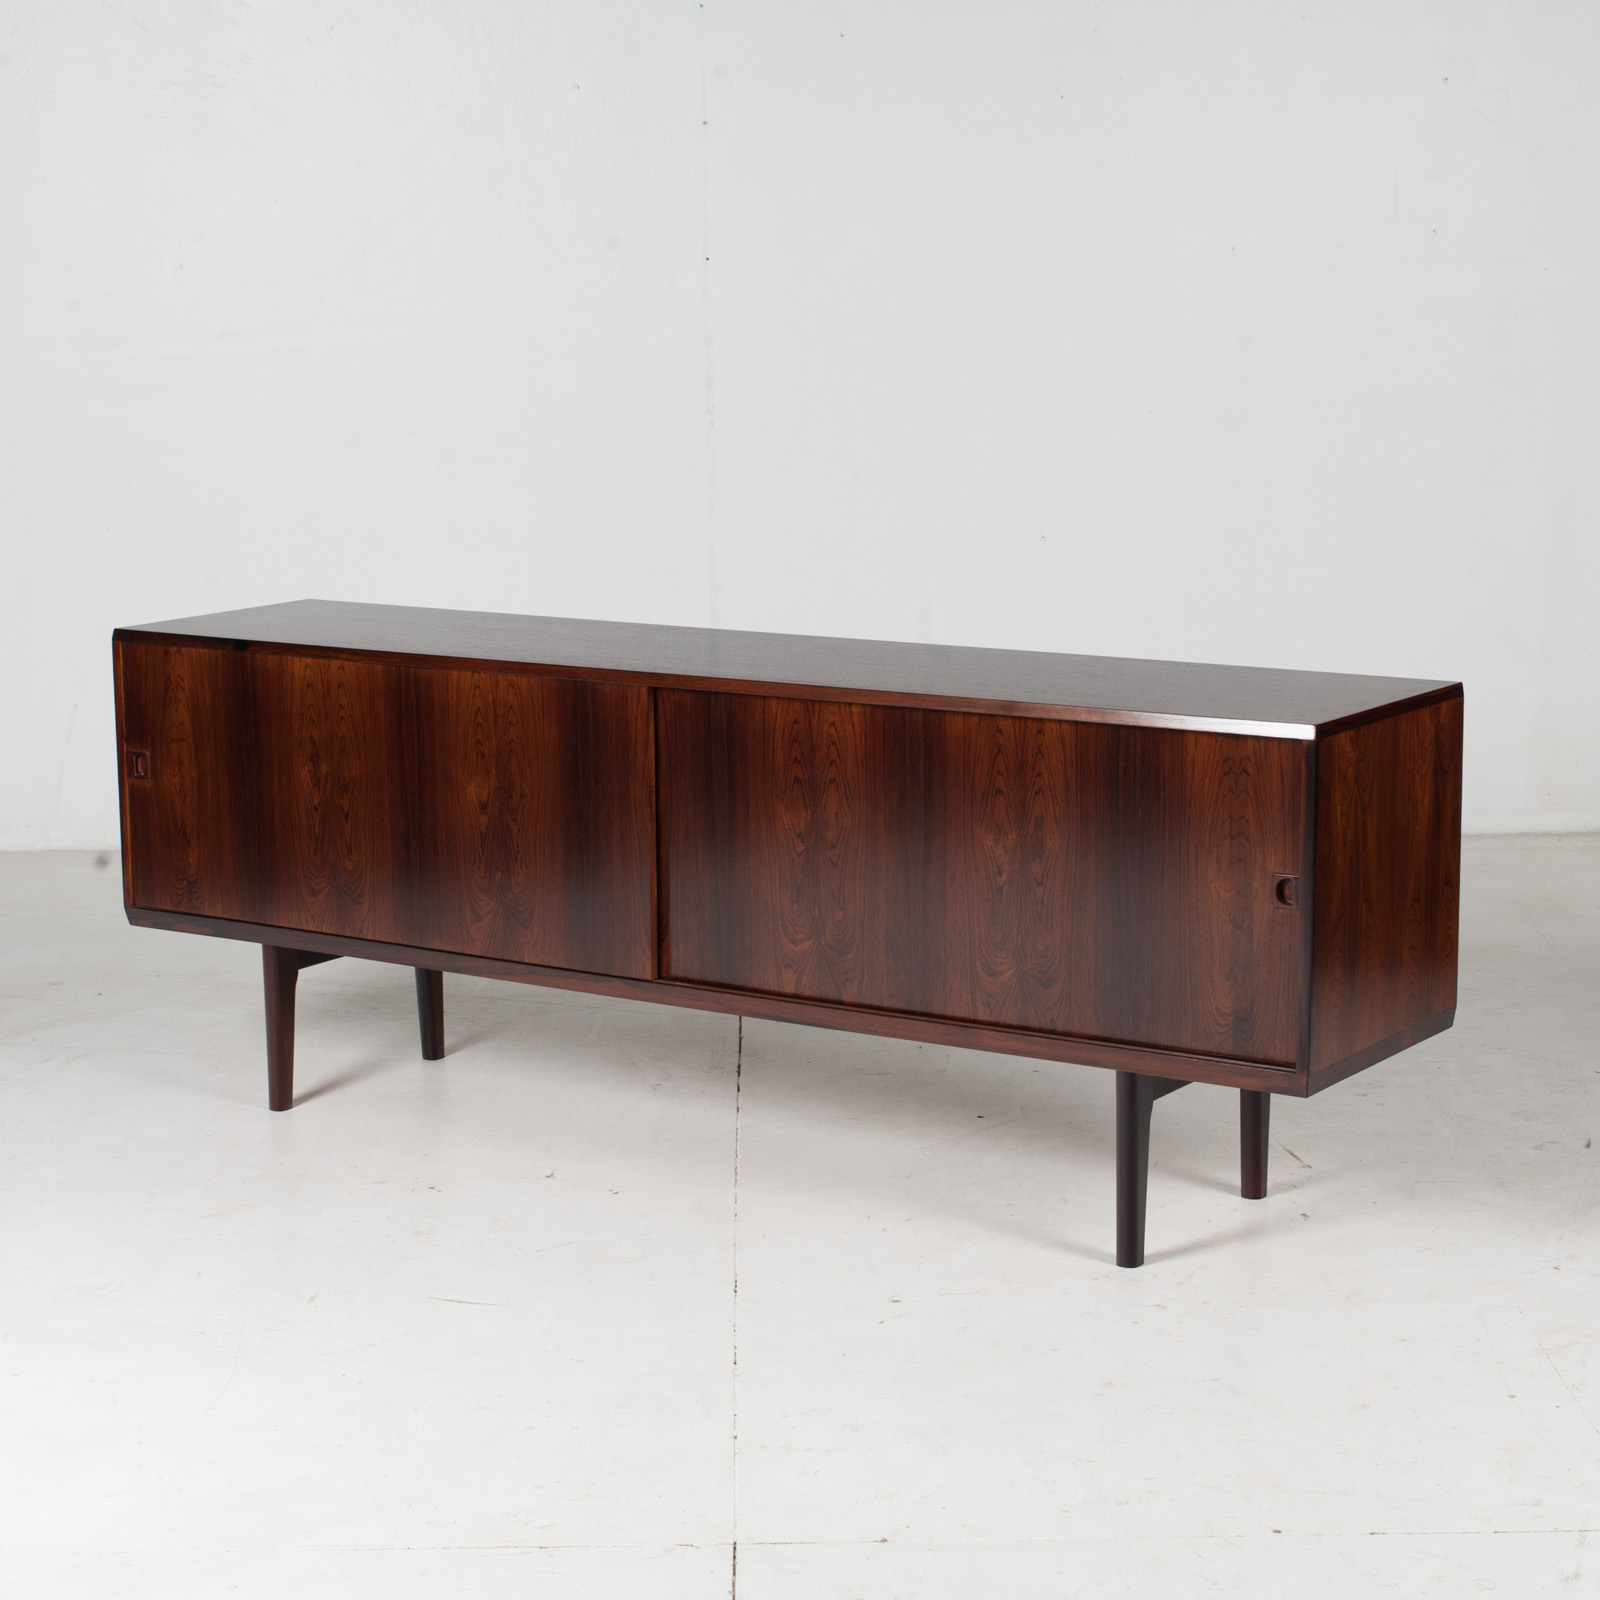 Sideboard In Rosewood With Oak Interior For Brouer Furniture, 1960s, Denmark4 2